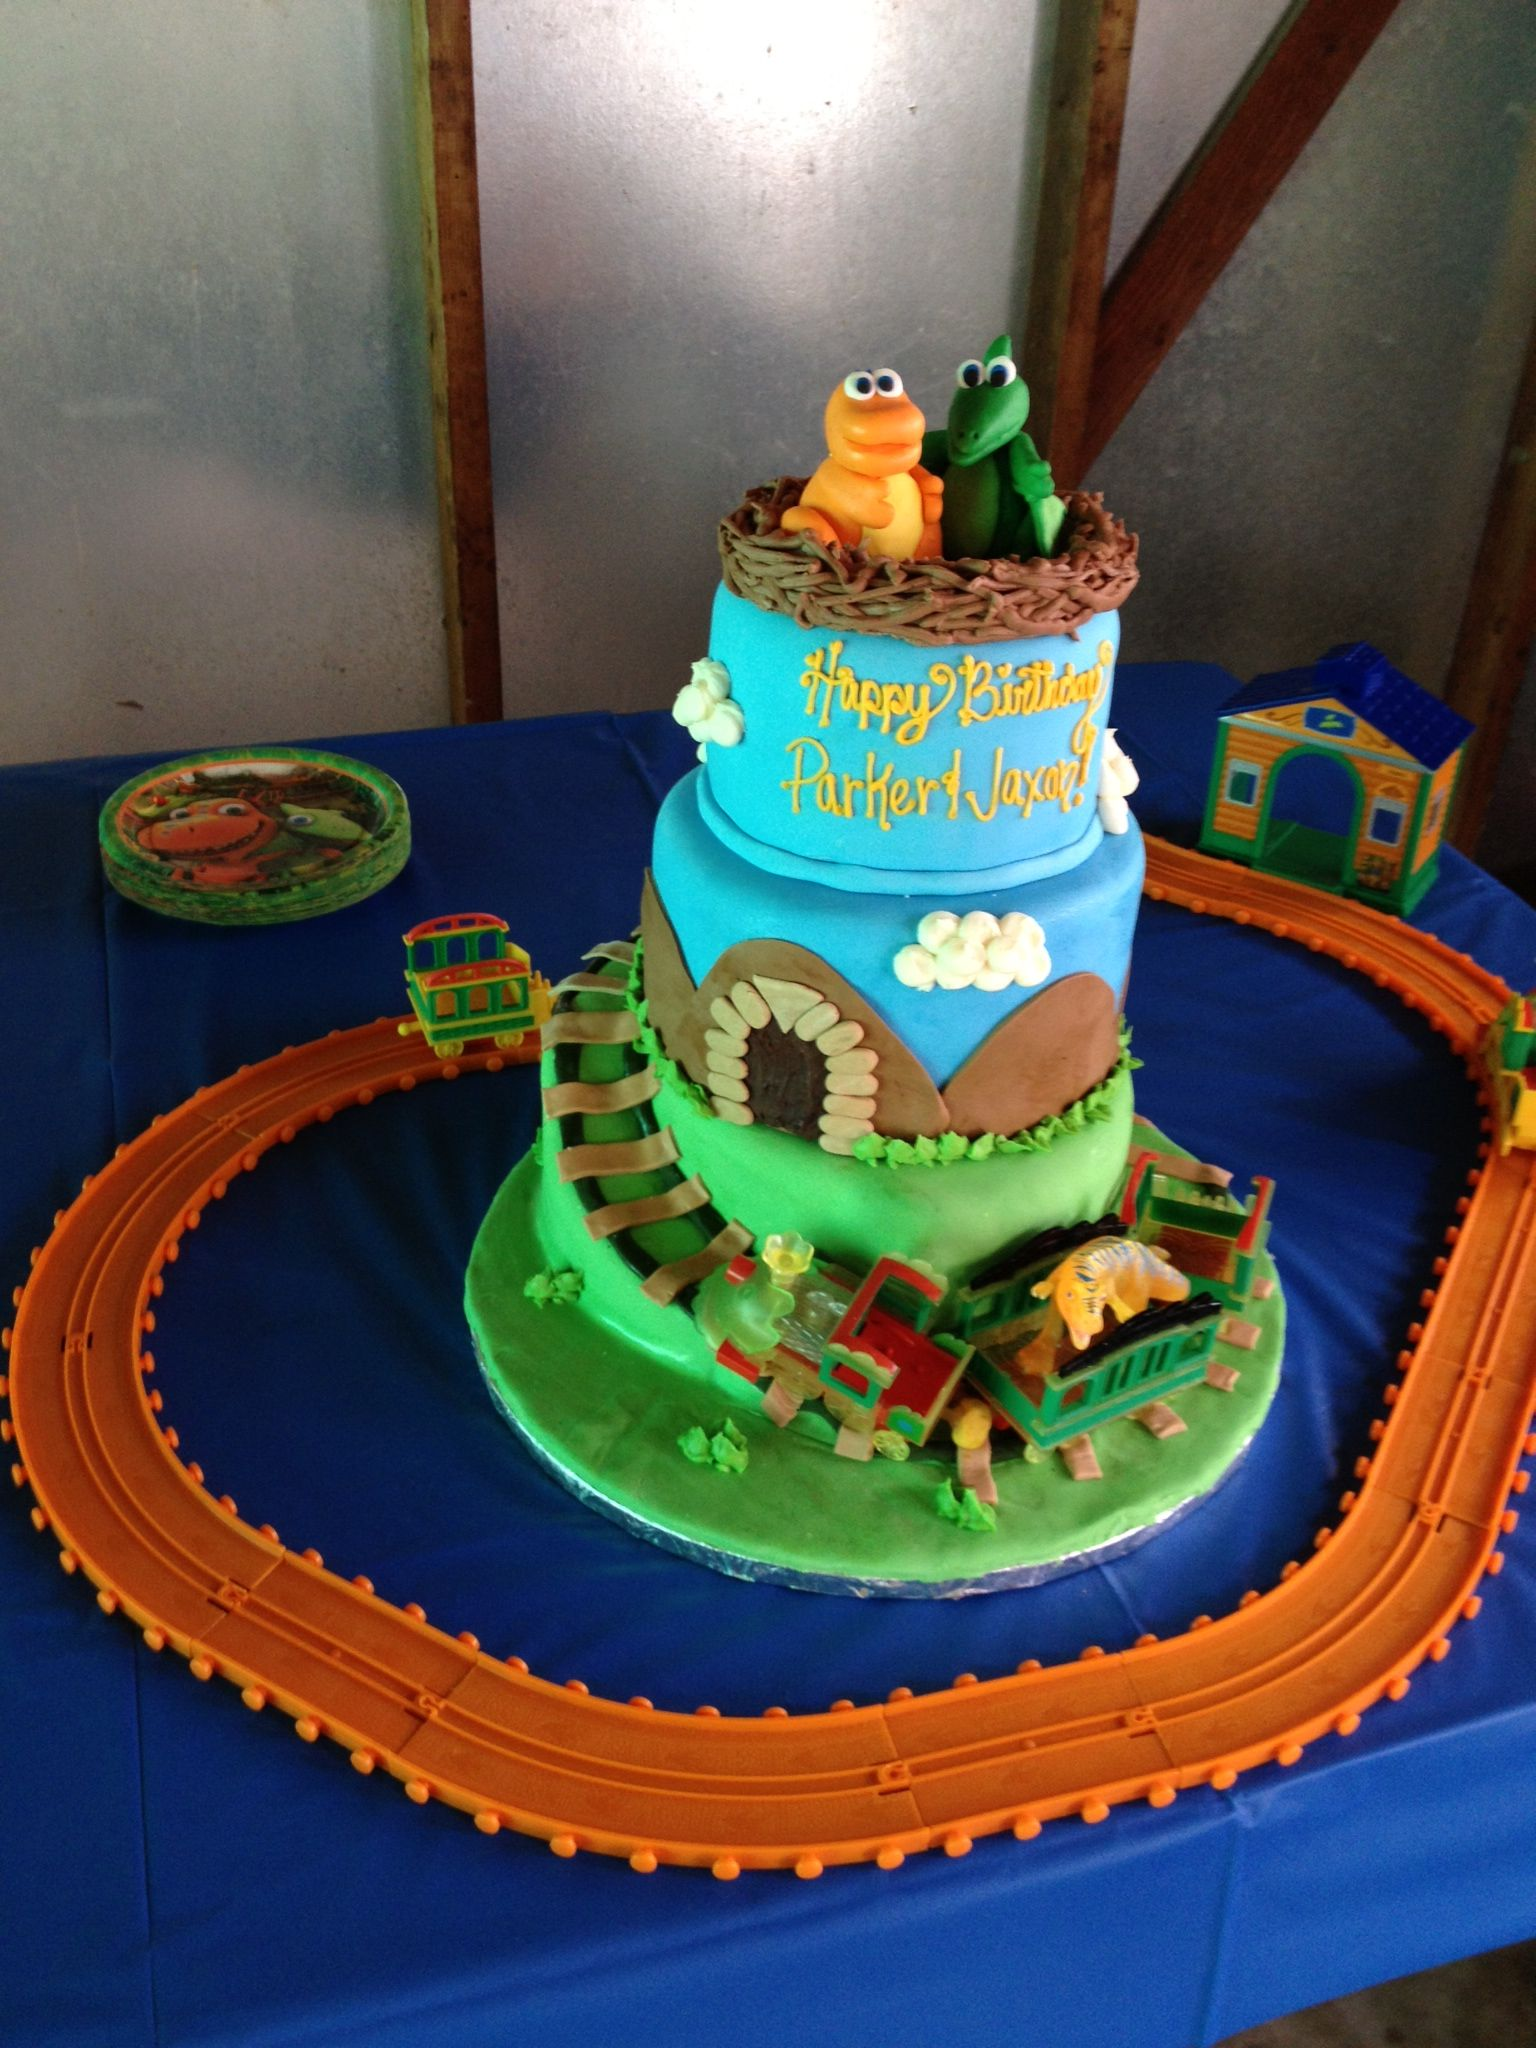 Enjoyable Dinosaur Train Cake Dinosaur Train Cakes Dinosaur Train Party Funny Birthday Cards Online Alyptdamsfinfo